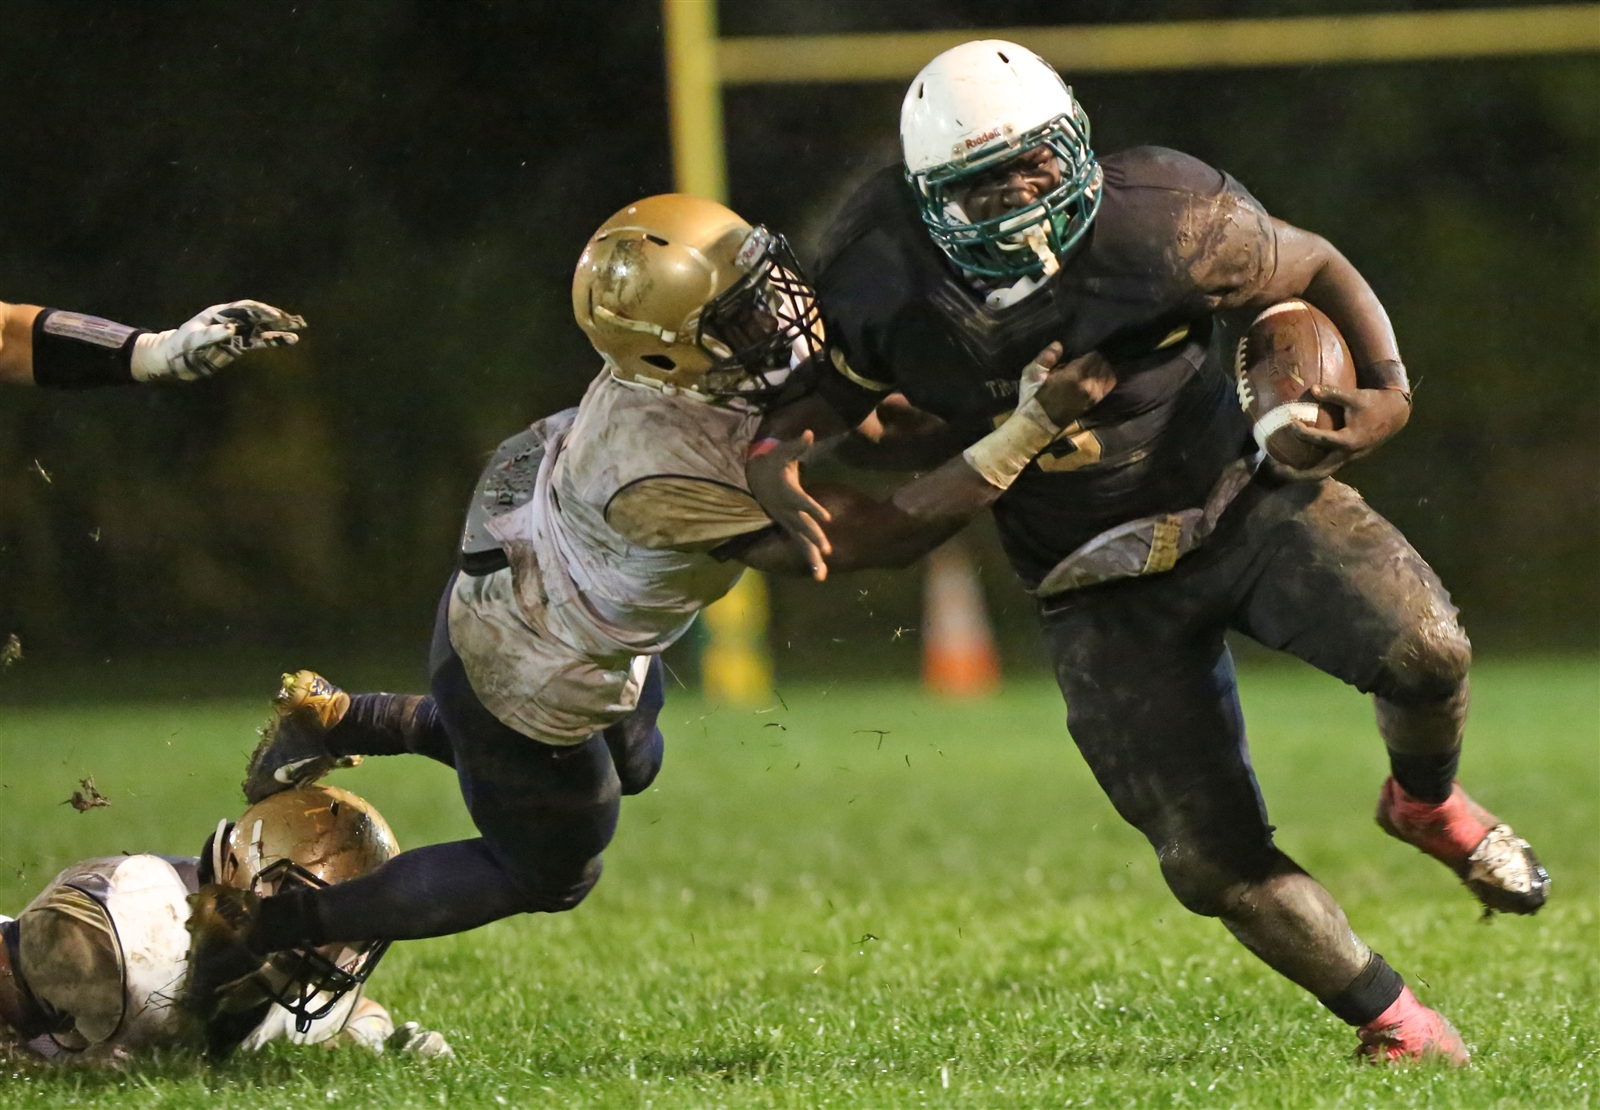 Joe Harrison (right) and his Bishop Timon-St. Jude Tigers  scored the lone touchdown in a regular-season triumph over Canisius. (Dave DeLuca/Special to The News)